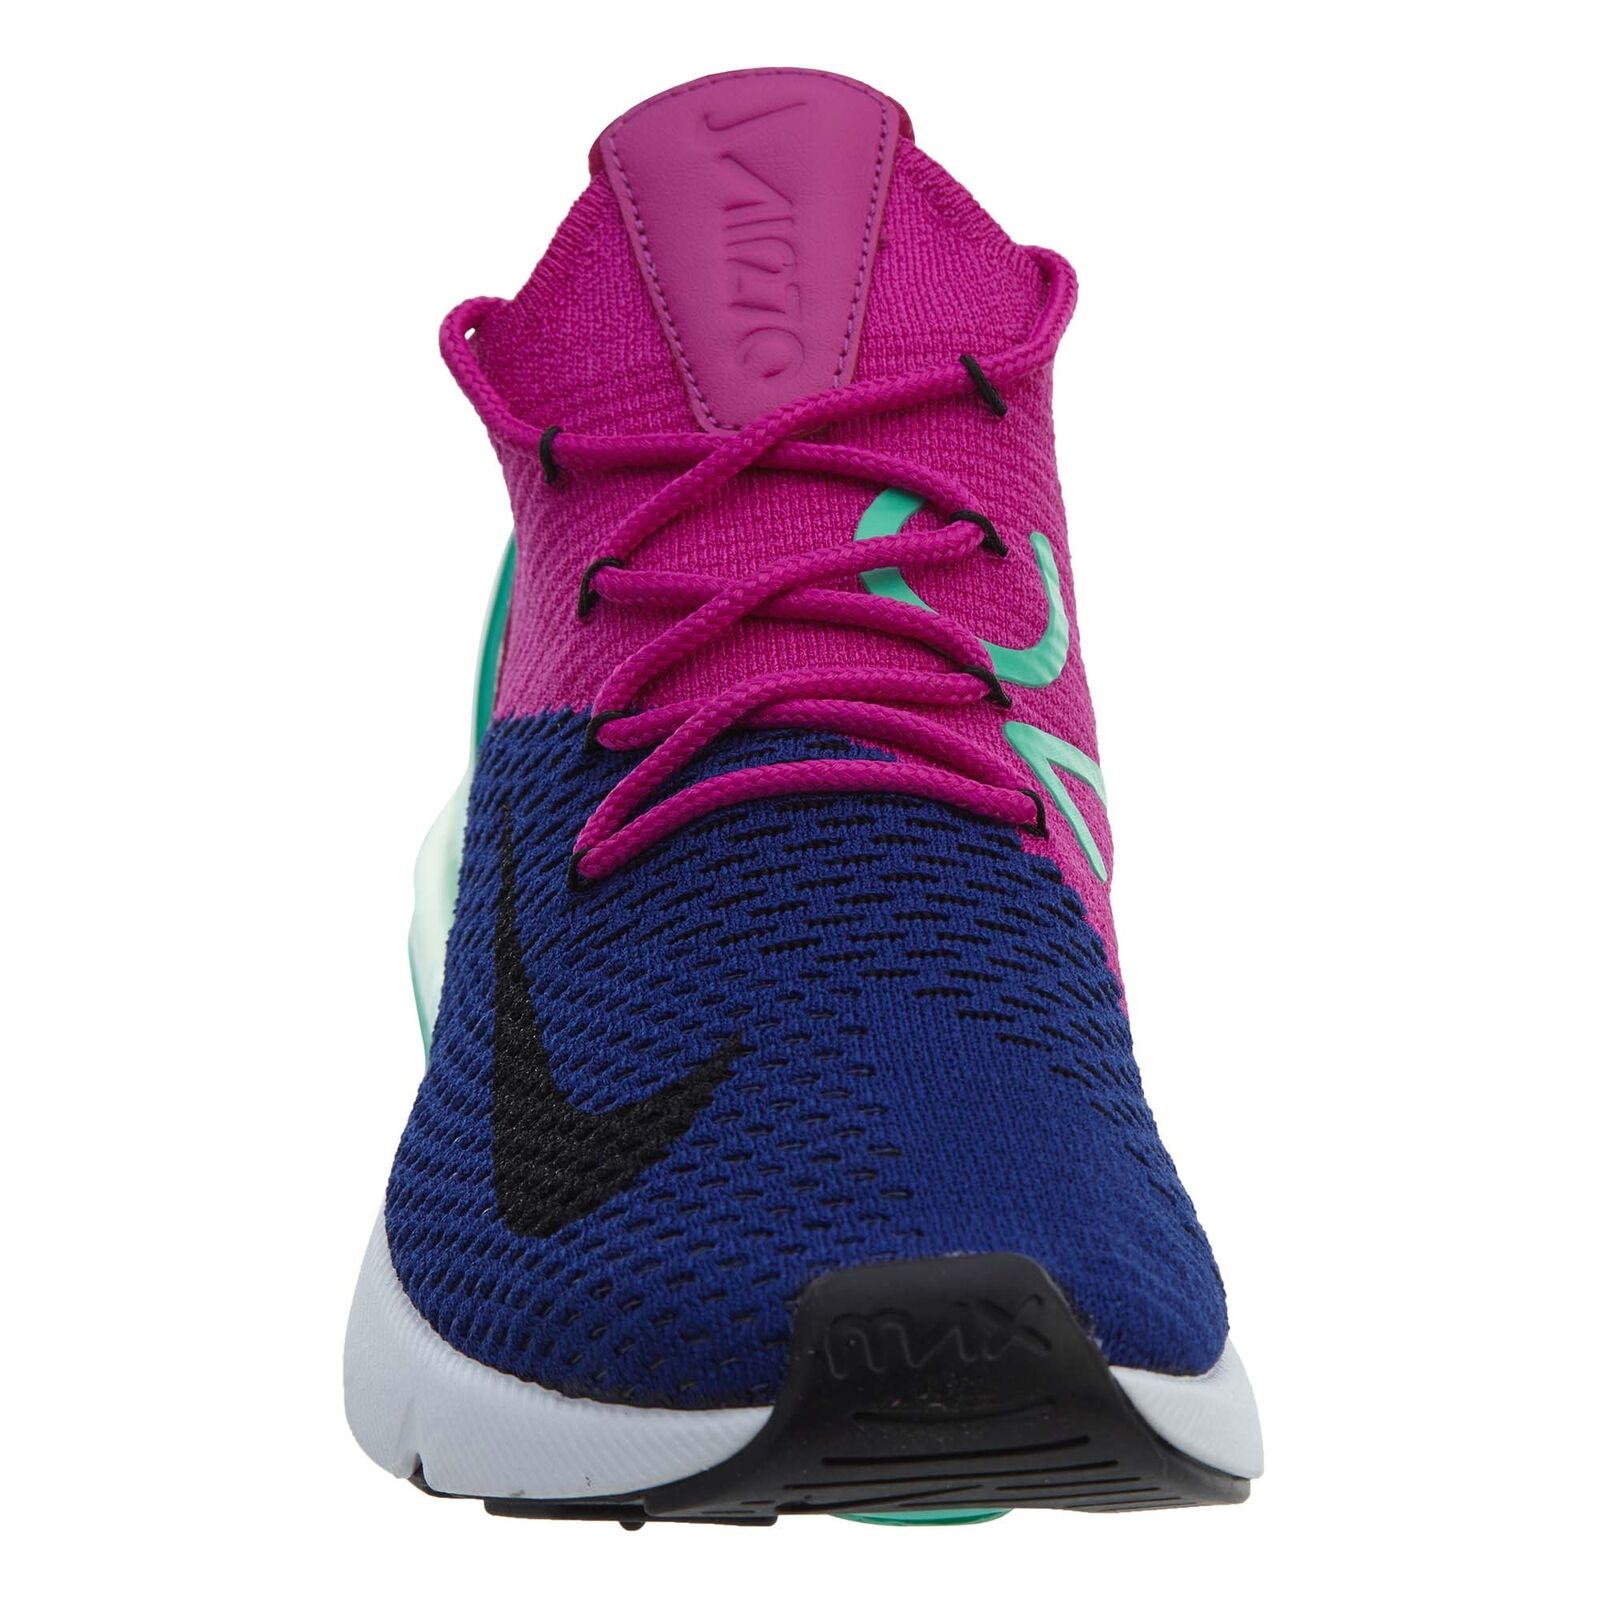 timeless design ee4d1 8aa22 ... Nike Air Max 270 270 270 Flyknit Mens AO1023-401 Royal Fuchsia Running  Shoes Size